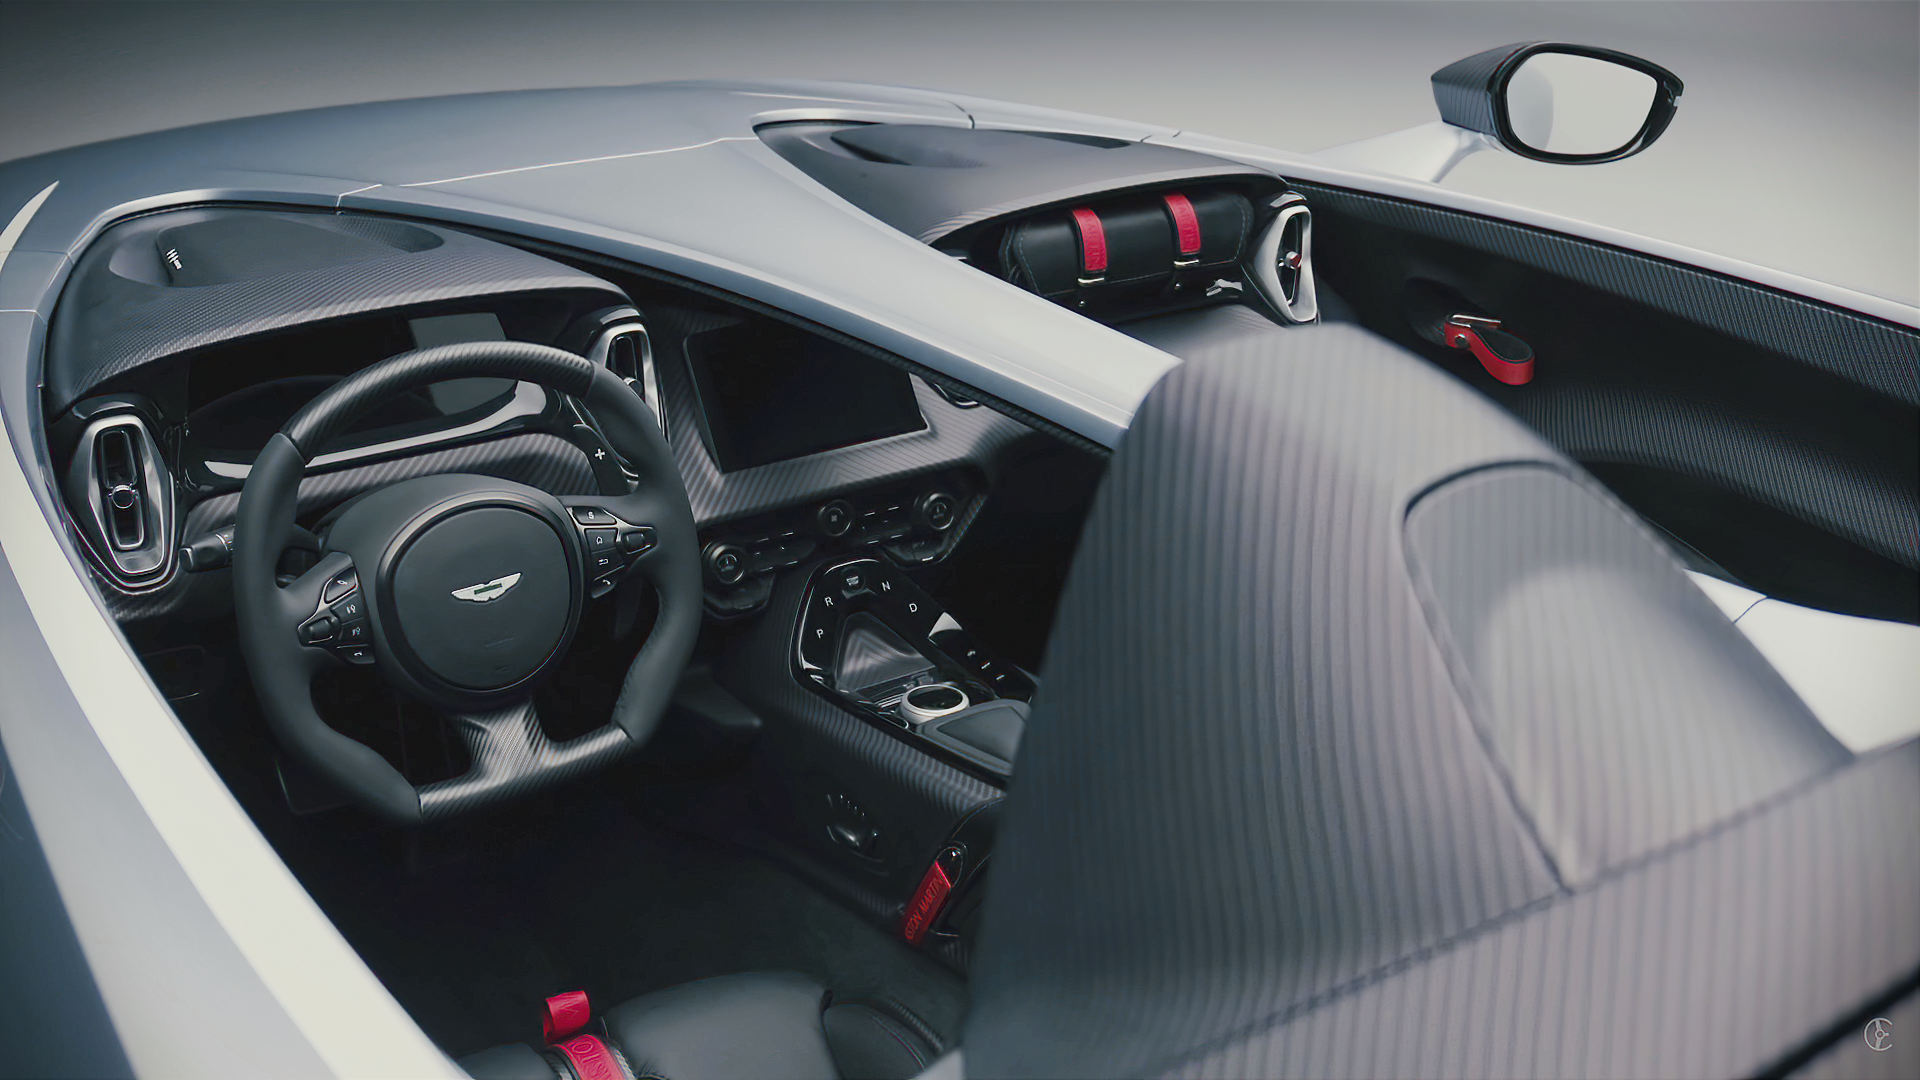 Aston Martin V12 Speedster 2021 Interior Wallpaper